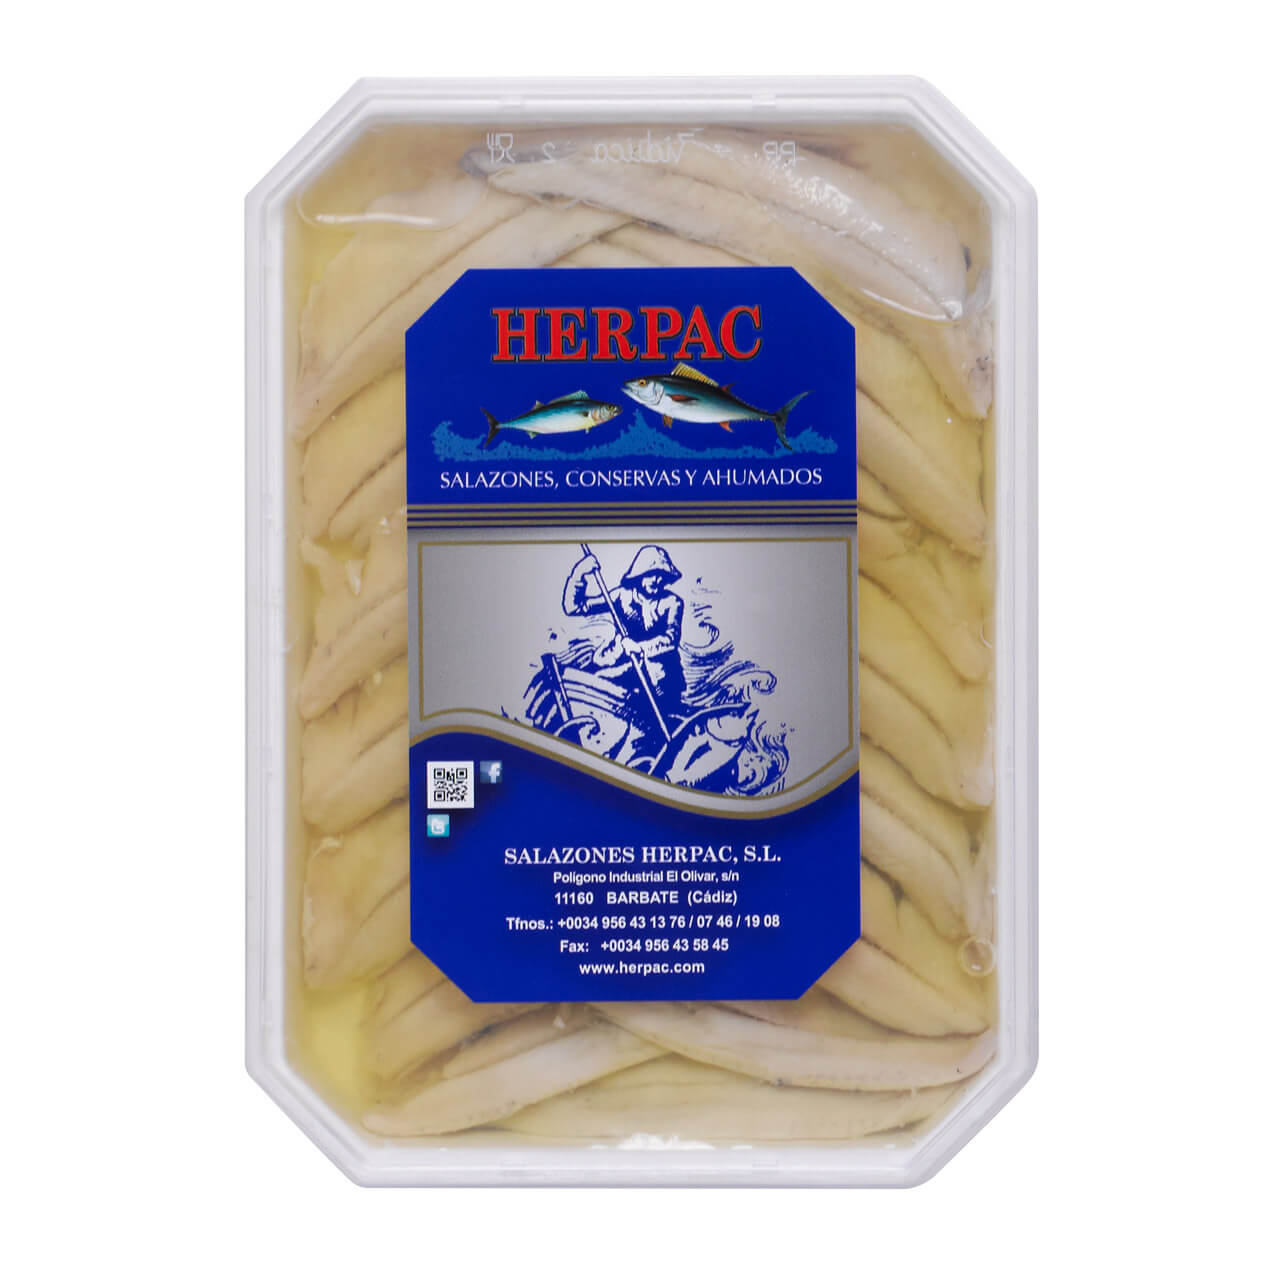 Herpac Boquerones in Vinegar and Sunflower Oil Brindisa Spanish Foods